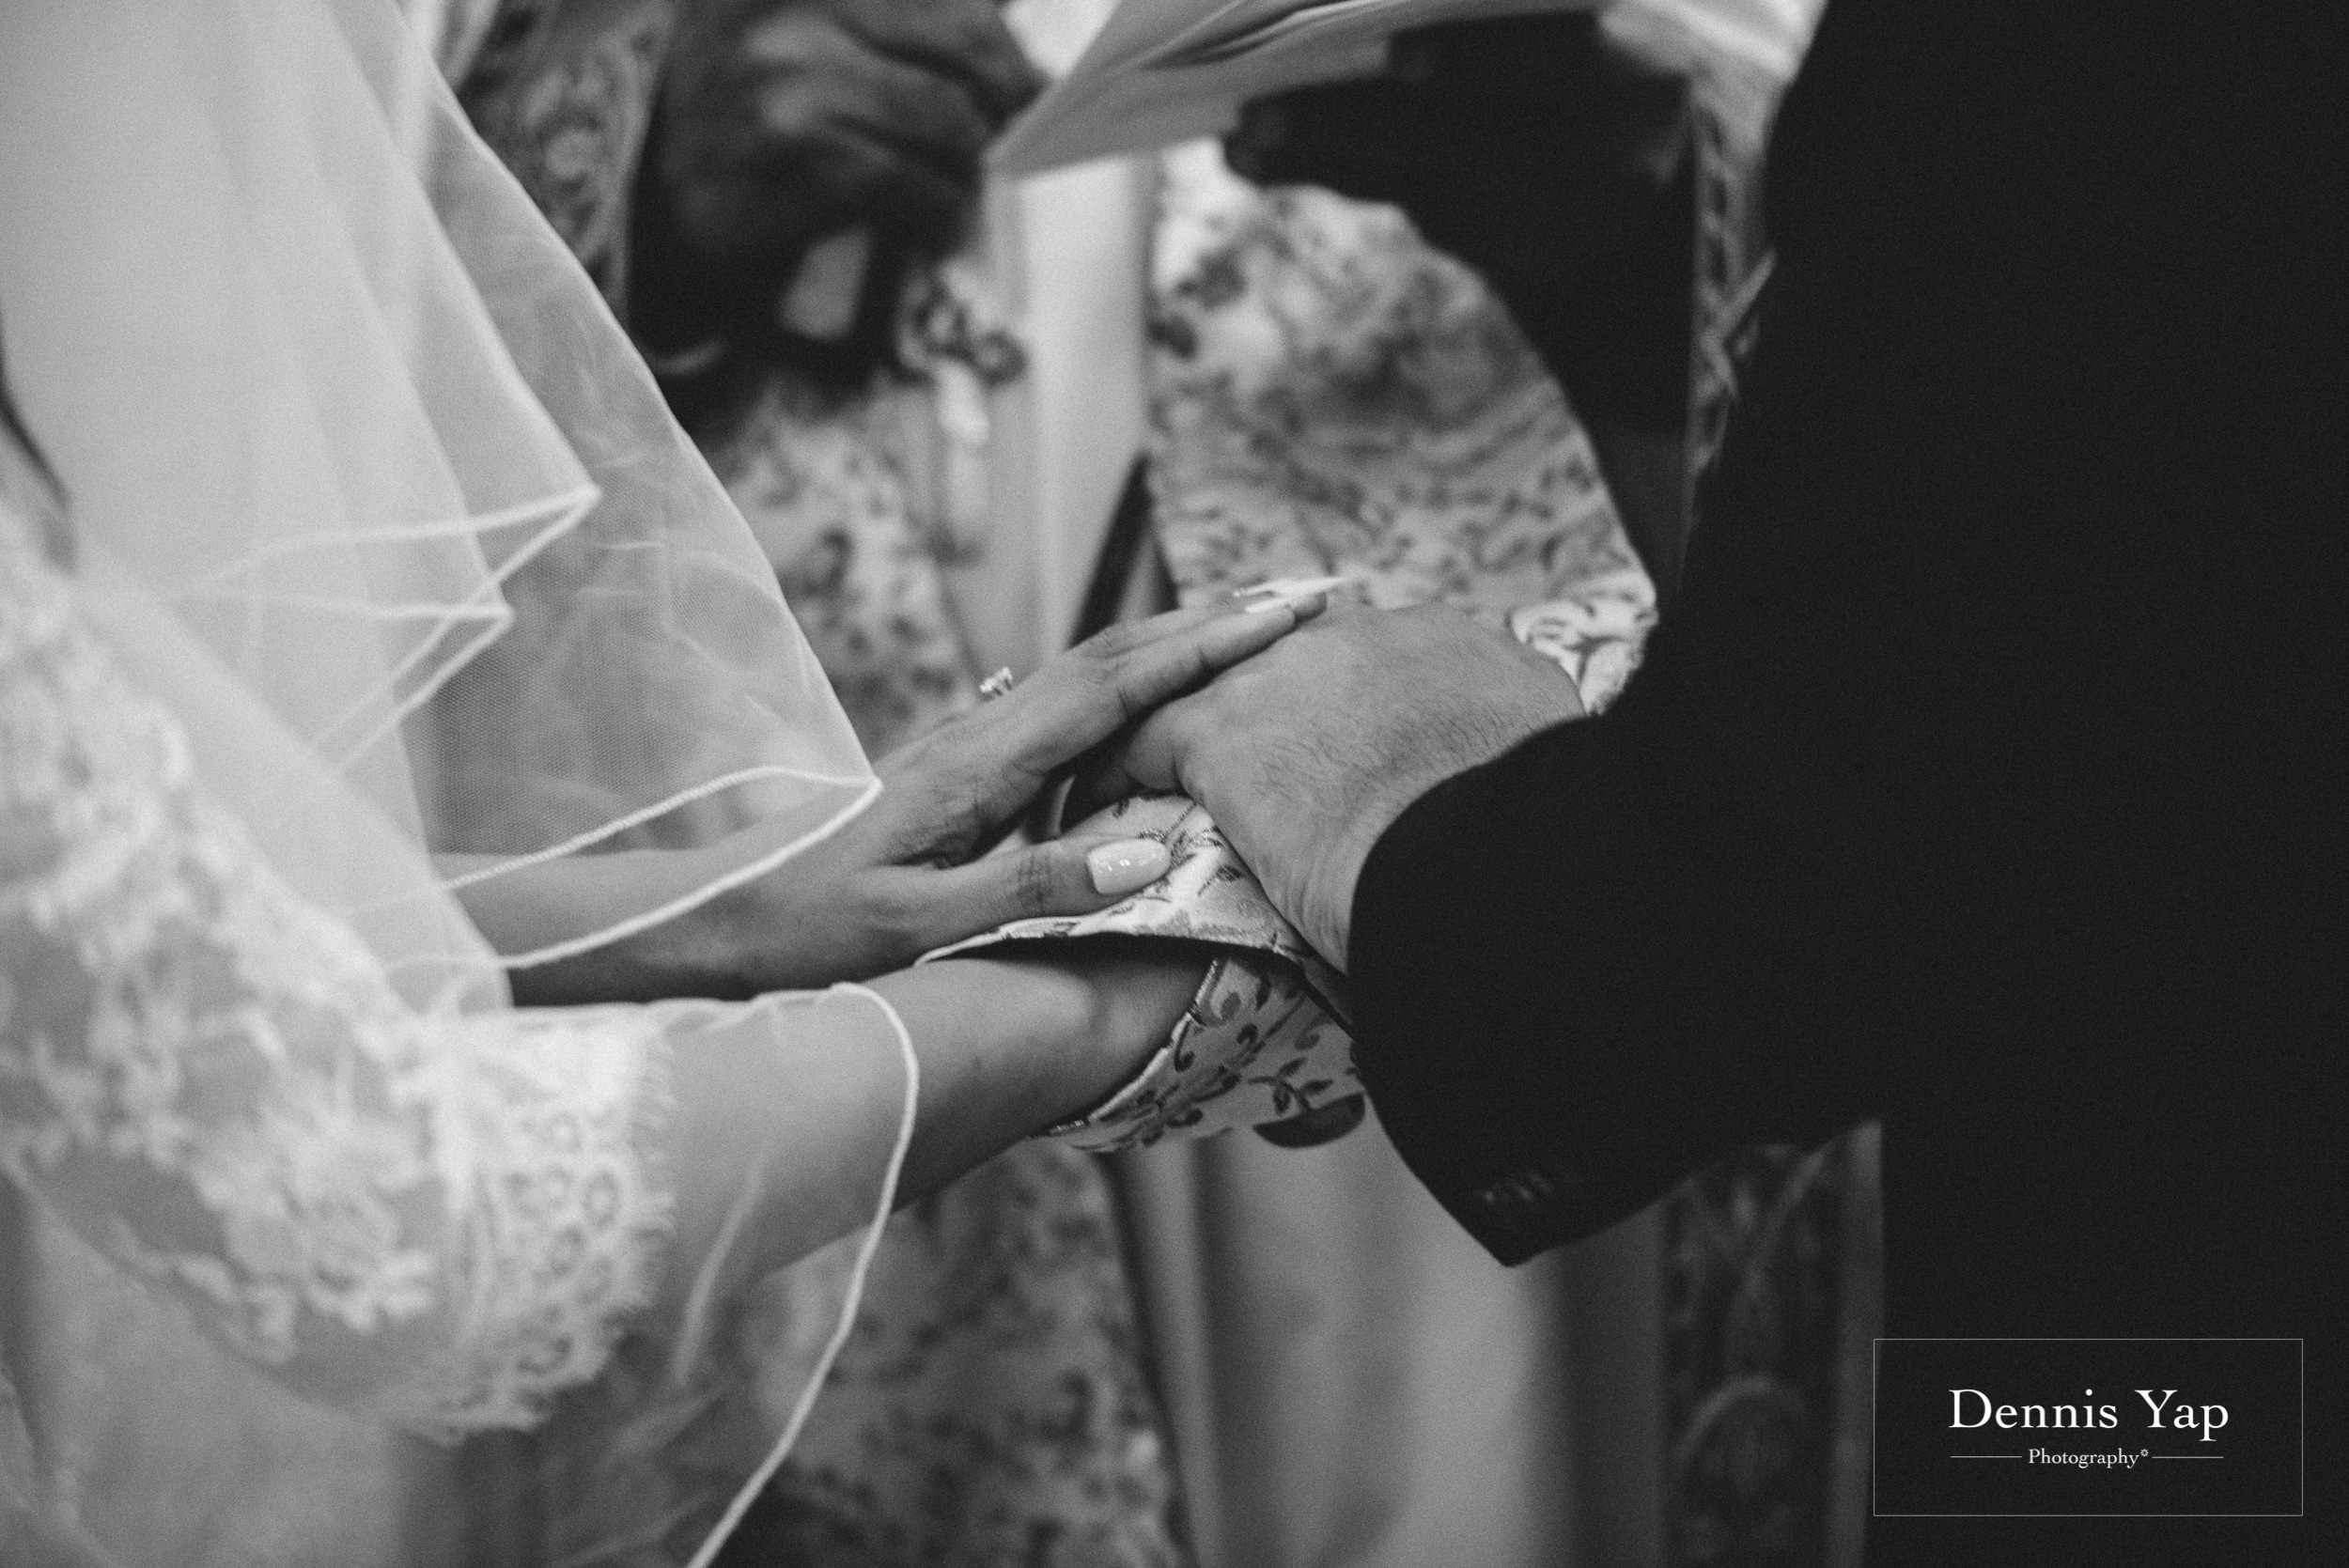 arun angela church wedding st peter bangsar dennis yap photography-21.jpg